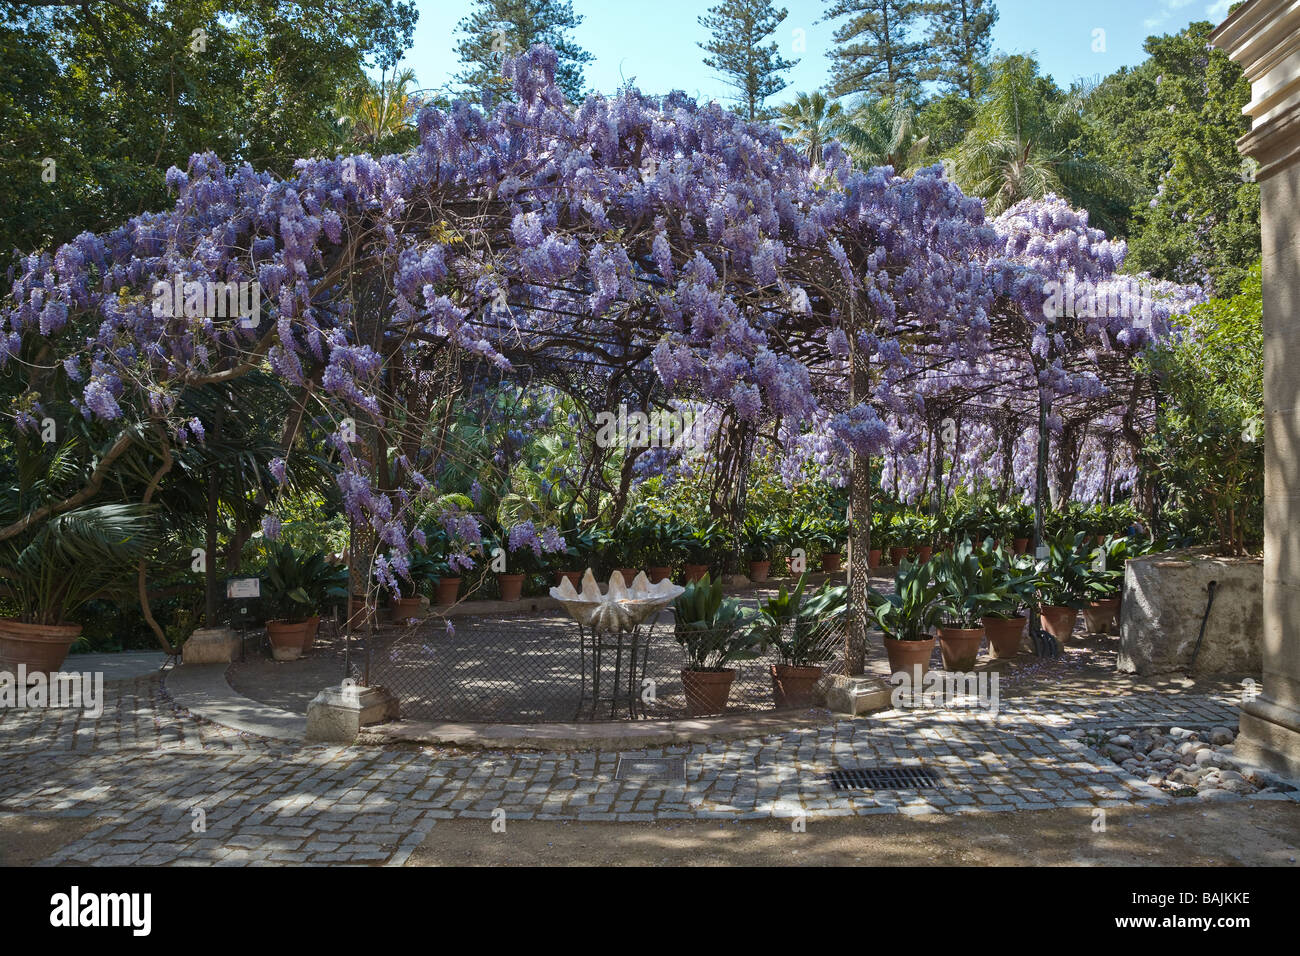 Wisteria Sinensis Growing Over Pergola At La Concepcion Historical Botanical Gardens Malaga Spain